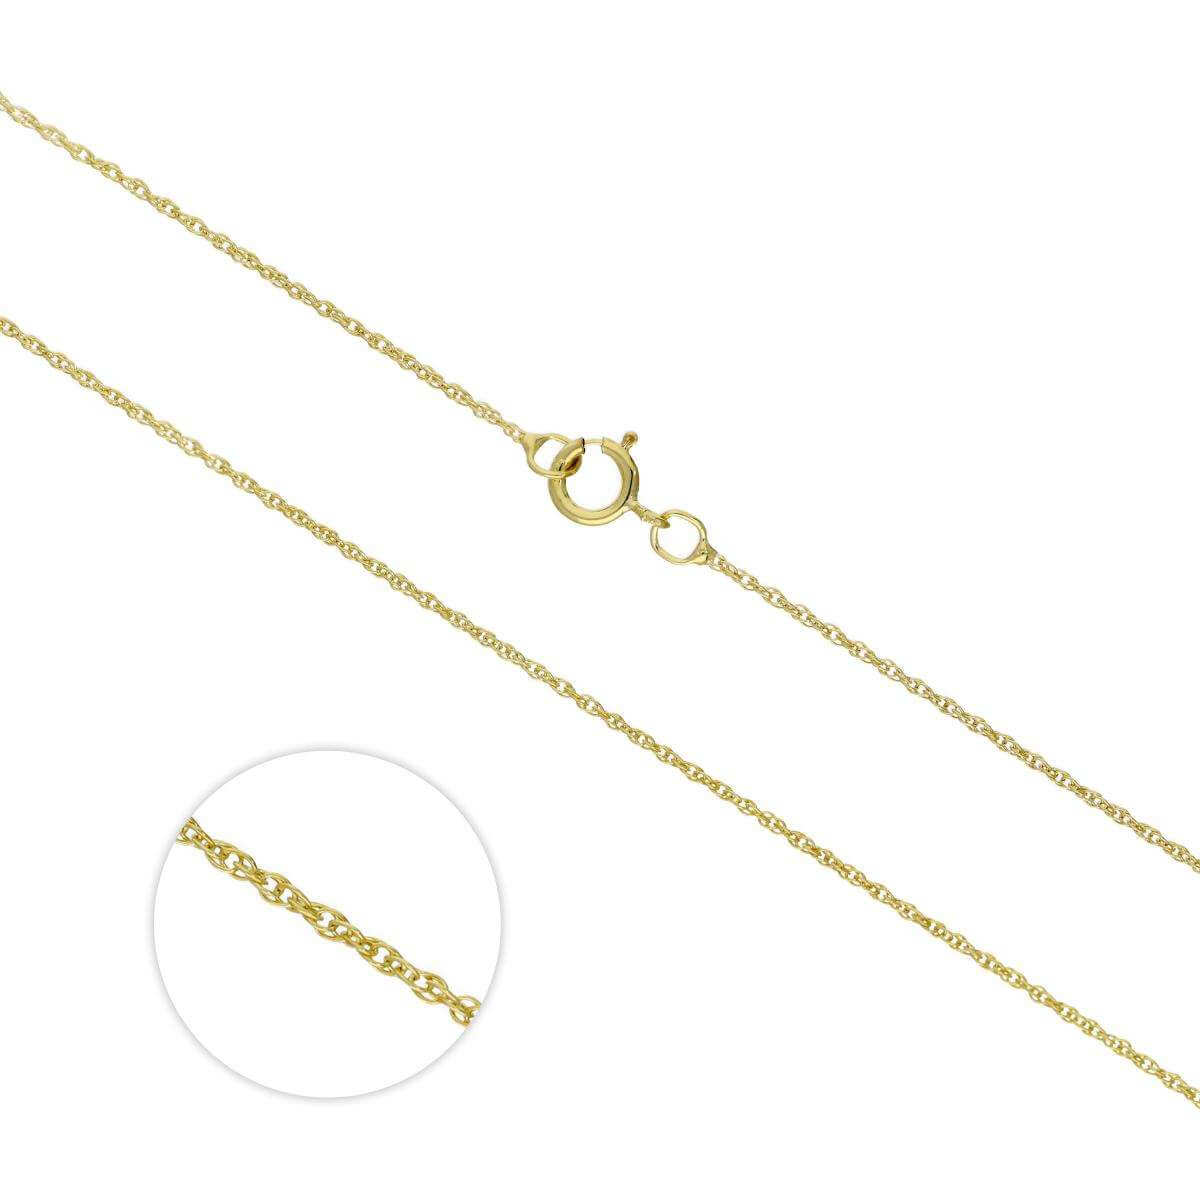 9ct Gold Rope Chain 16 - 18 Inches